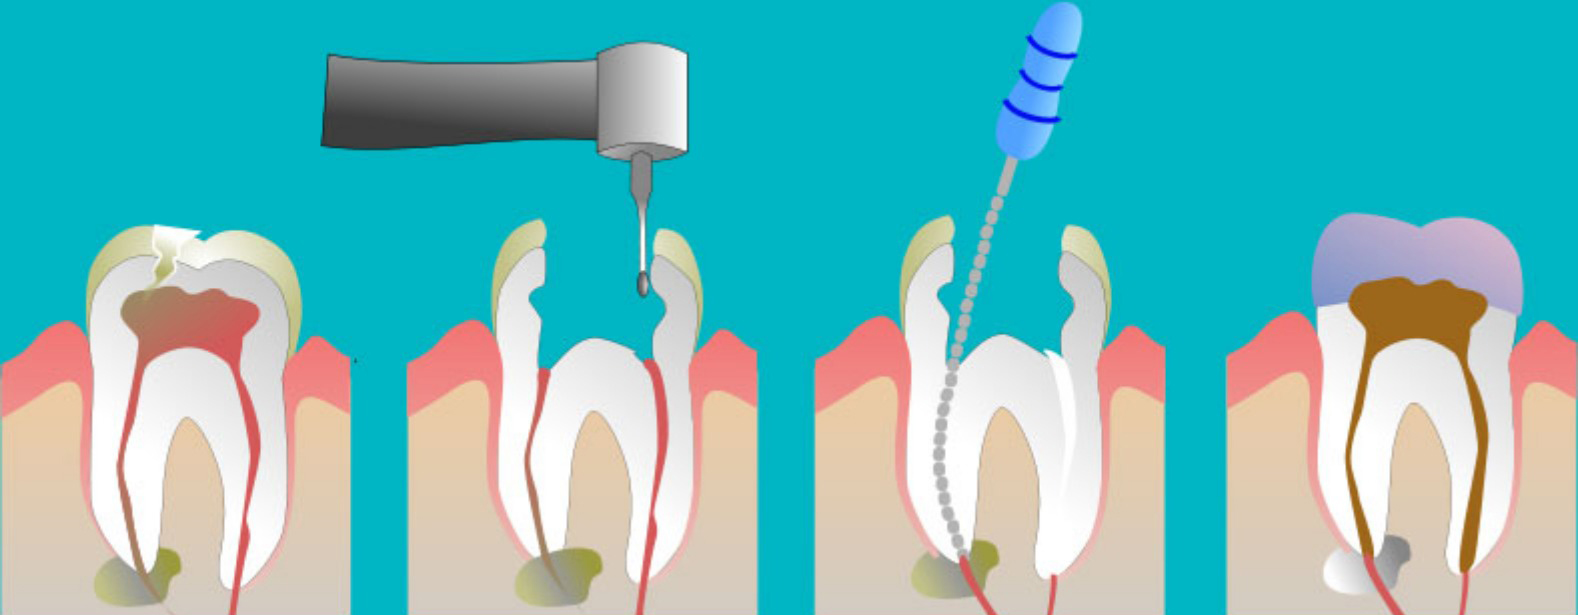 1367206530_495732266_3-Best-Root-Canal-Treatments-India-Services.jpg